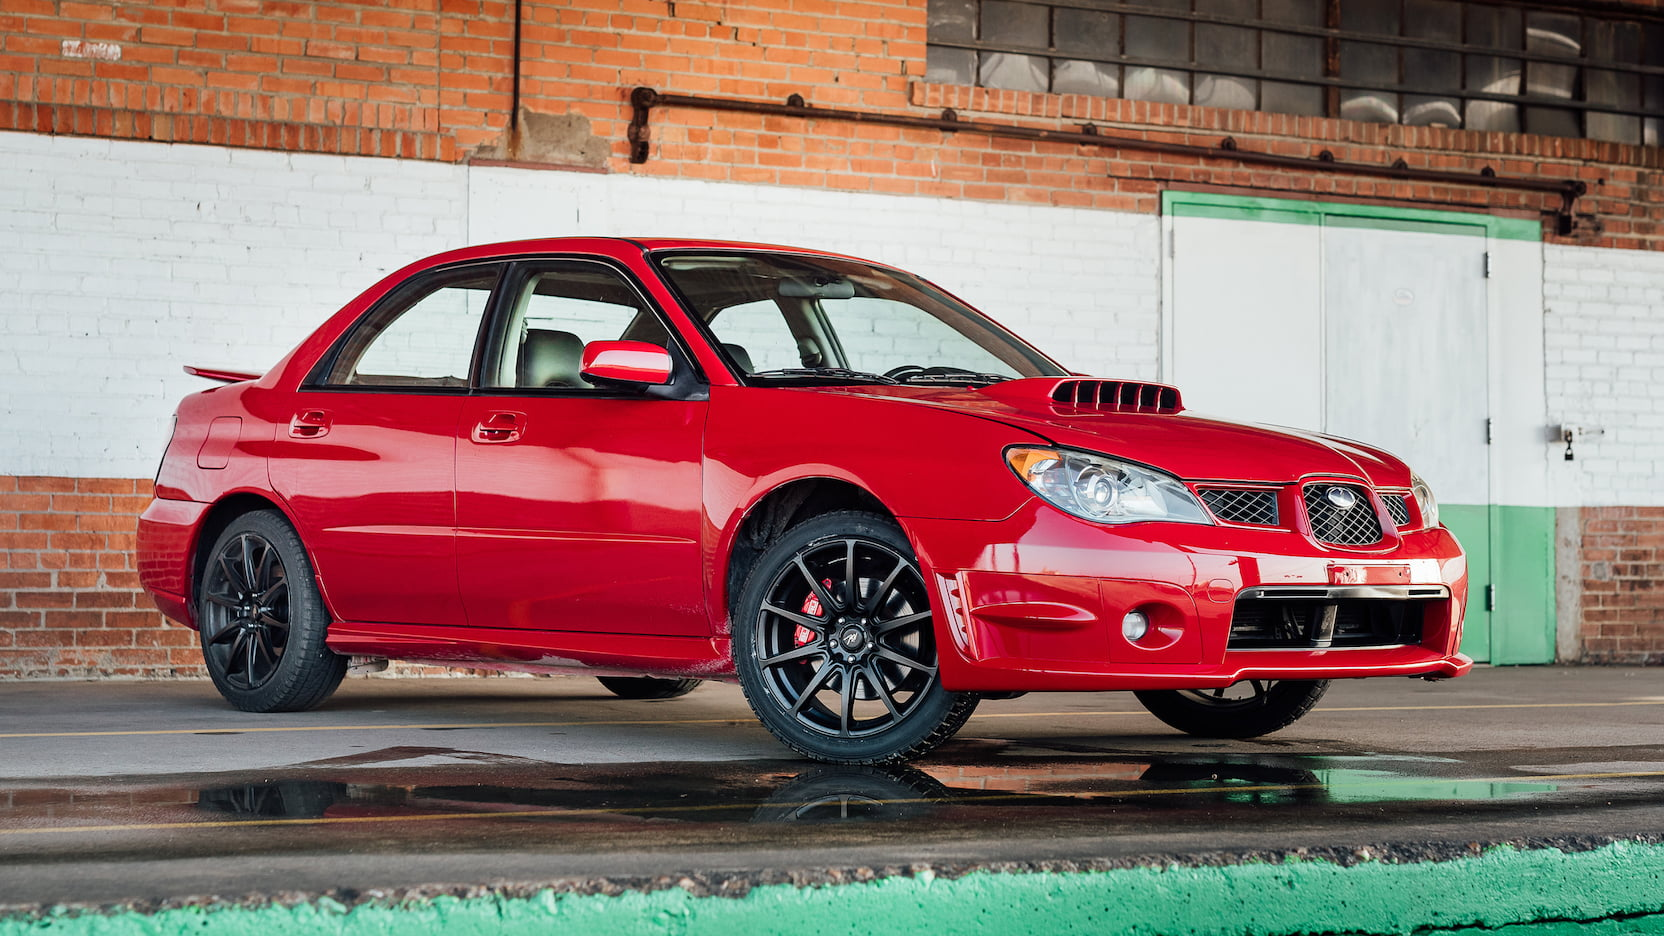 2006 Subaru WRX from Baby Driver is headed to auction